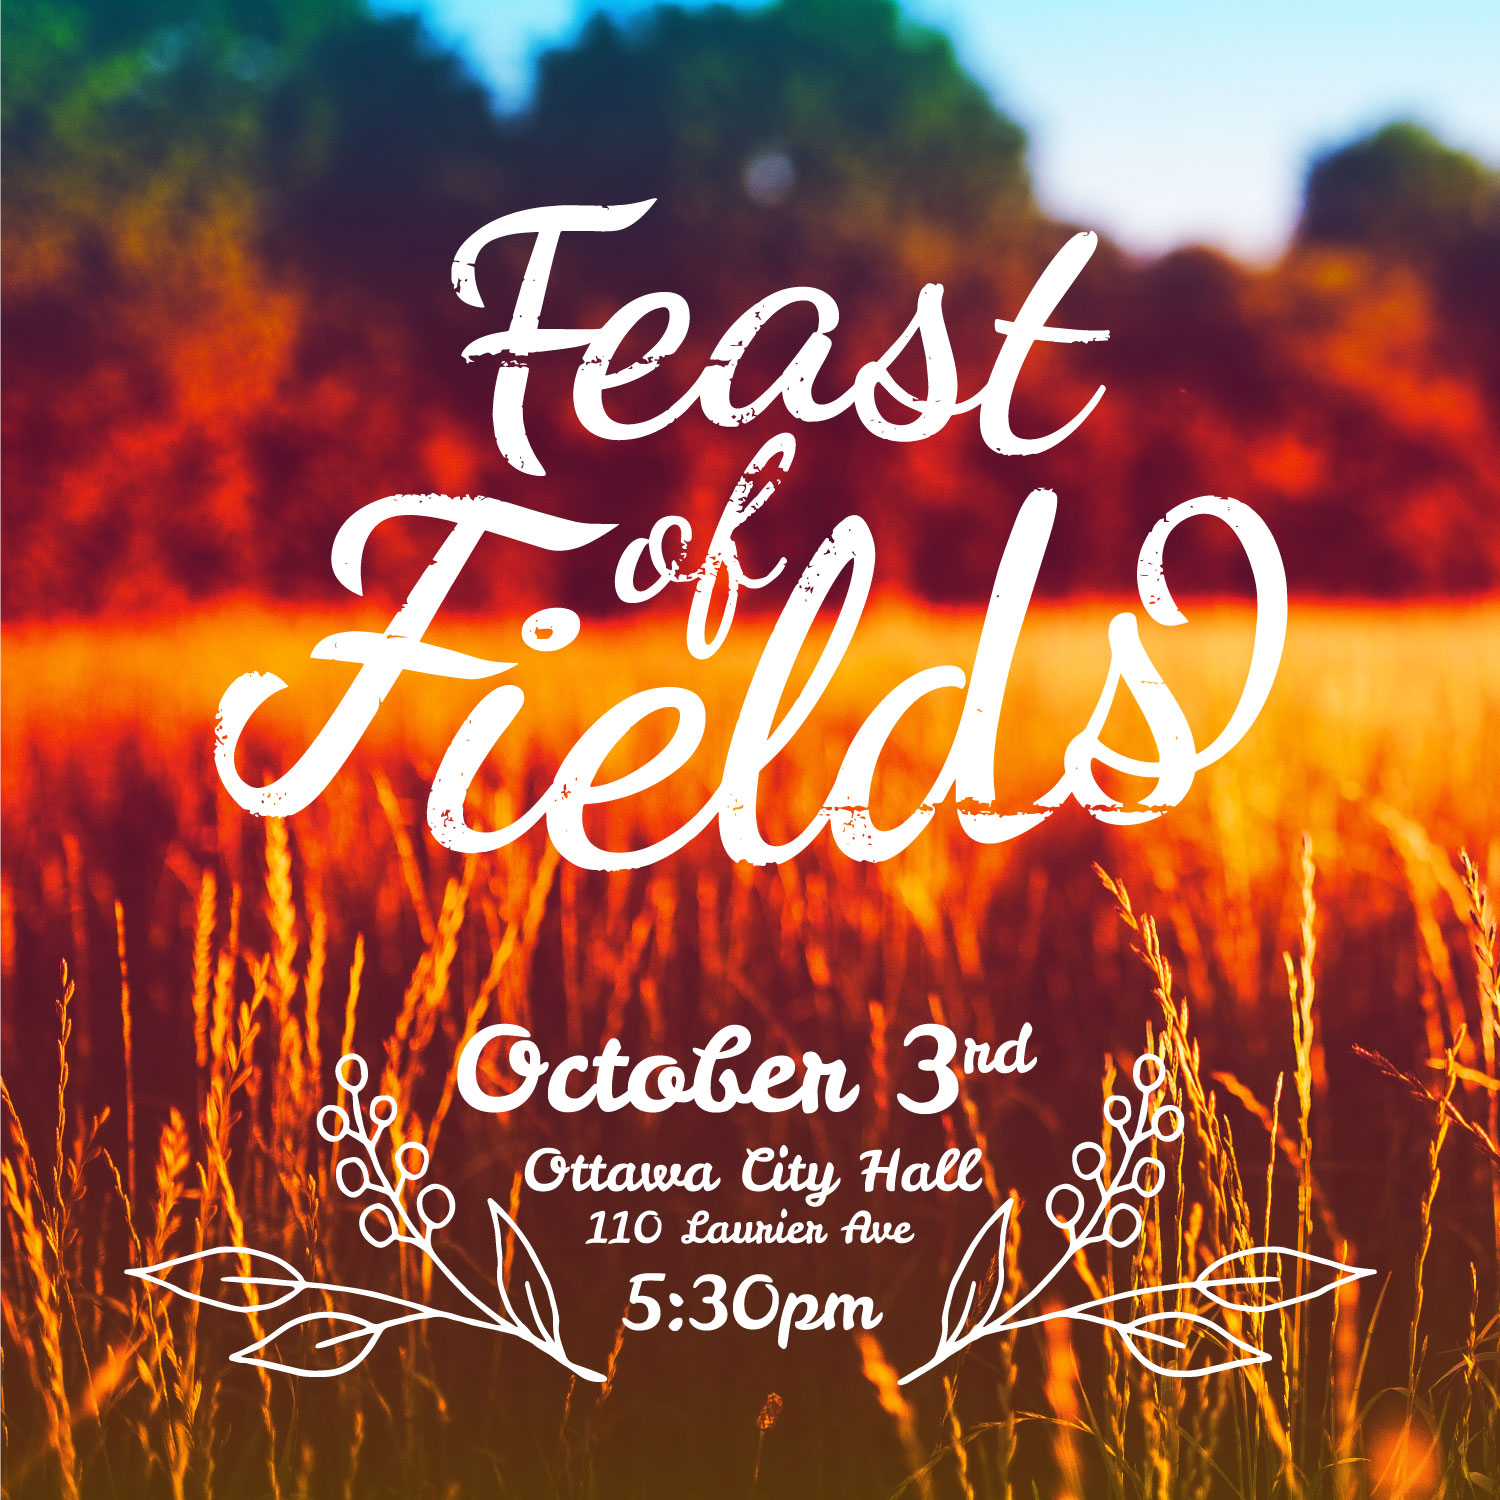 Outstanding Organic And Sustainable Foods, Wine And Beer At Feast Of  Fields. Join Us At Feast Of Fields, Chat With Local Farmers And Producers,  Sample